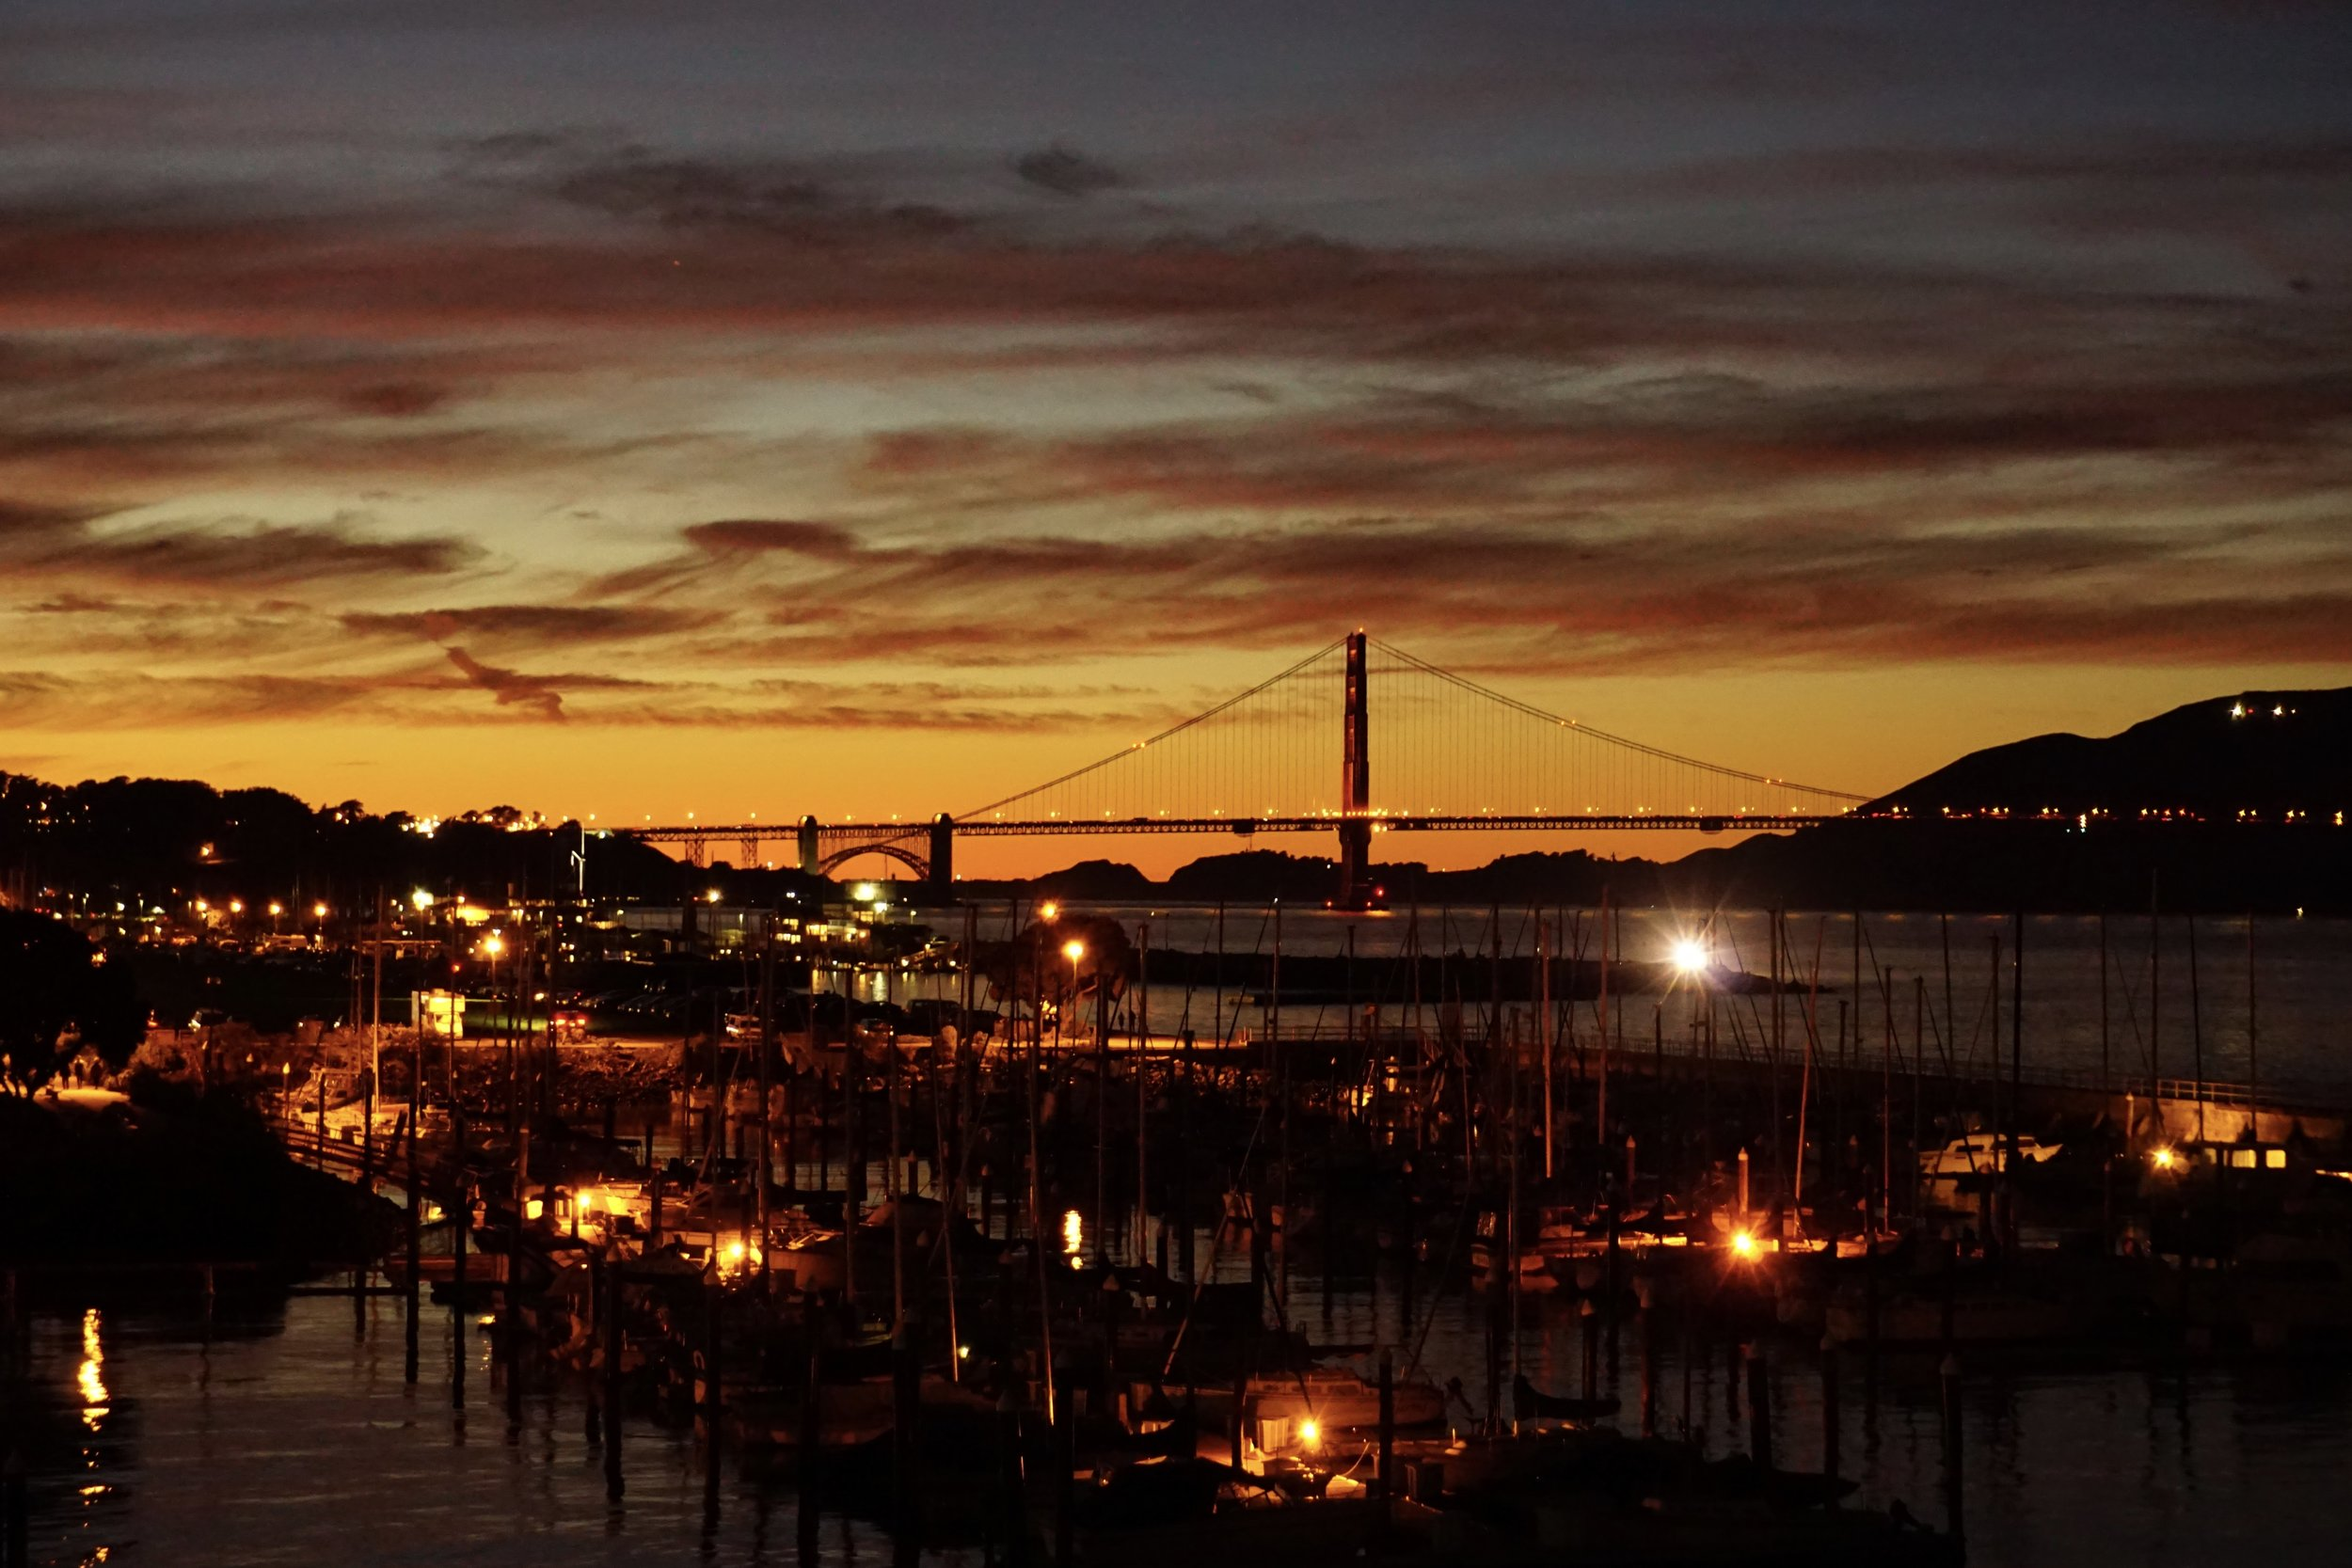 This City constantly shows off. Here from Ft. Mason, the Bridge + Sunset need no edits.